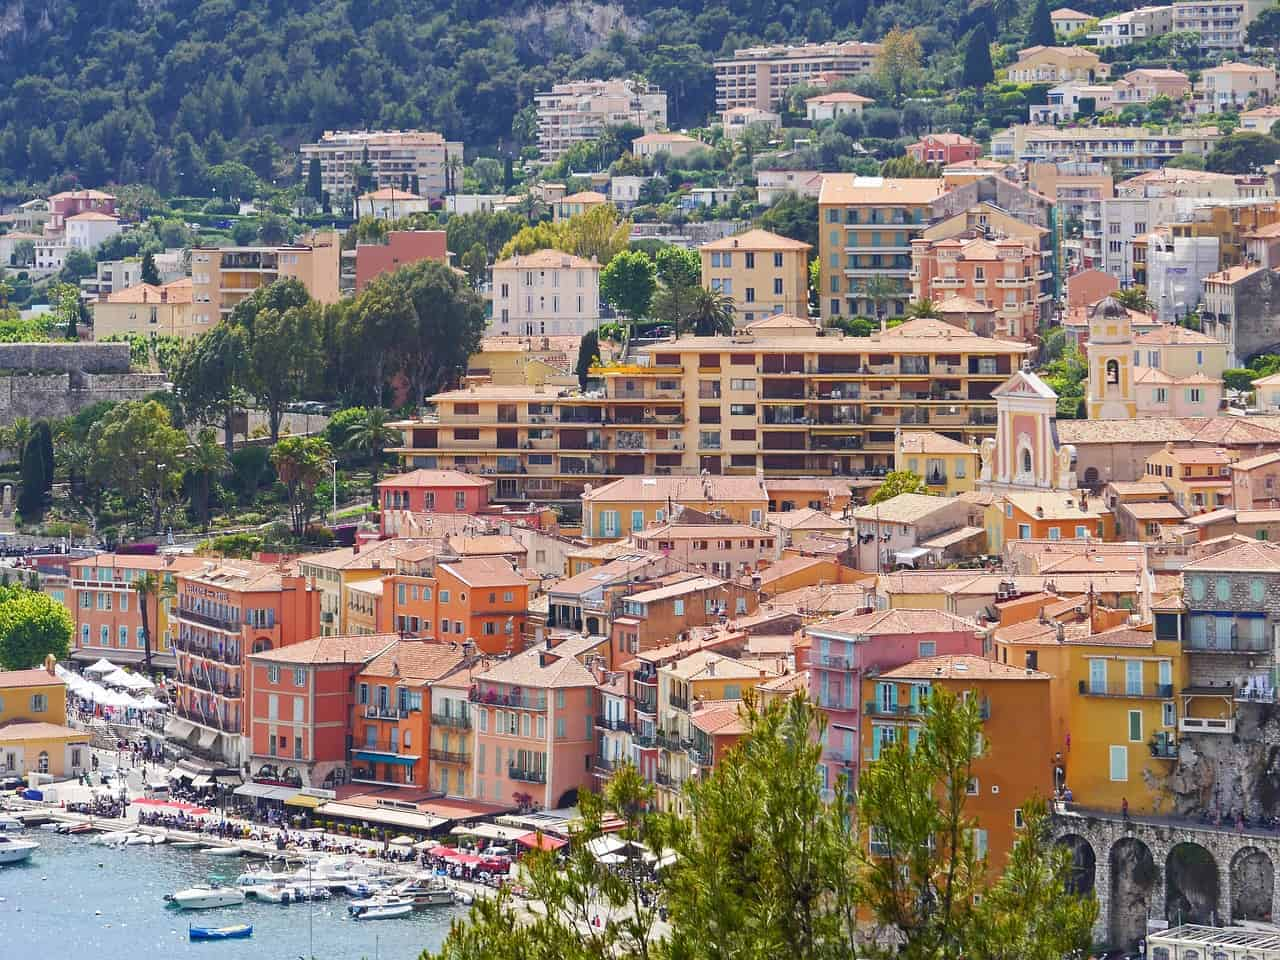 South of France seaside town